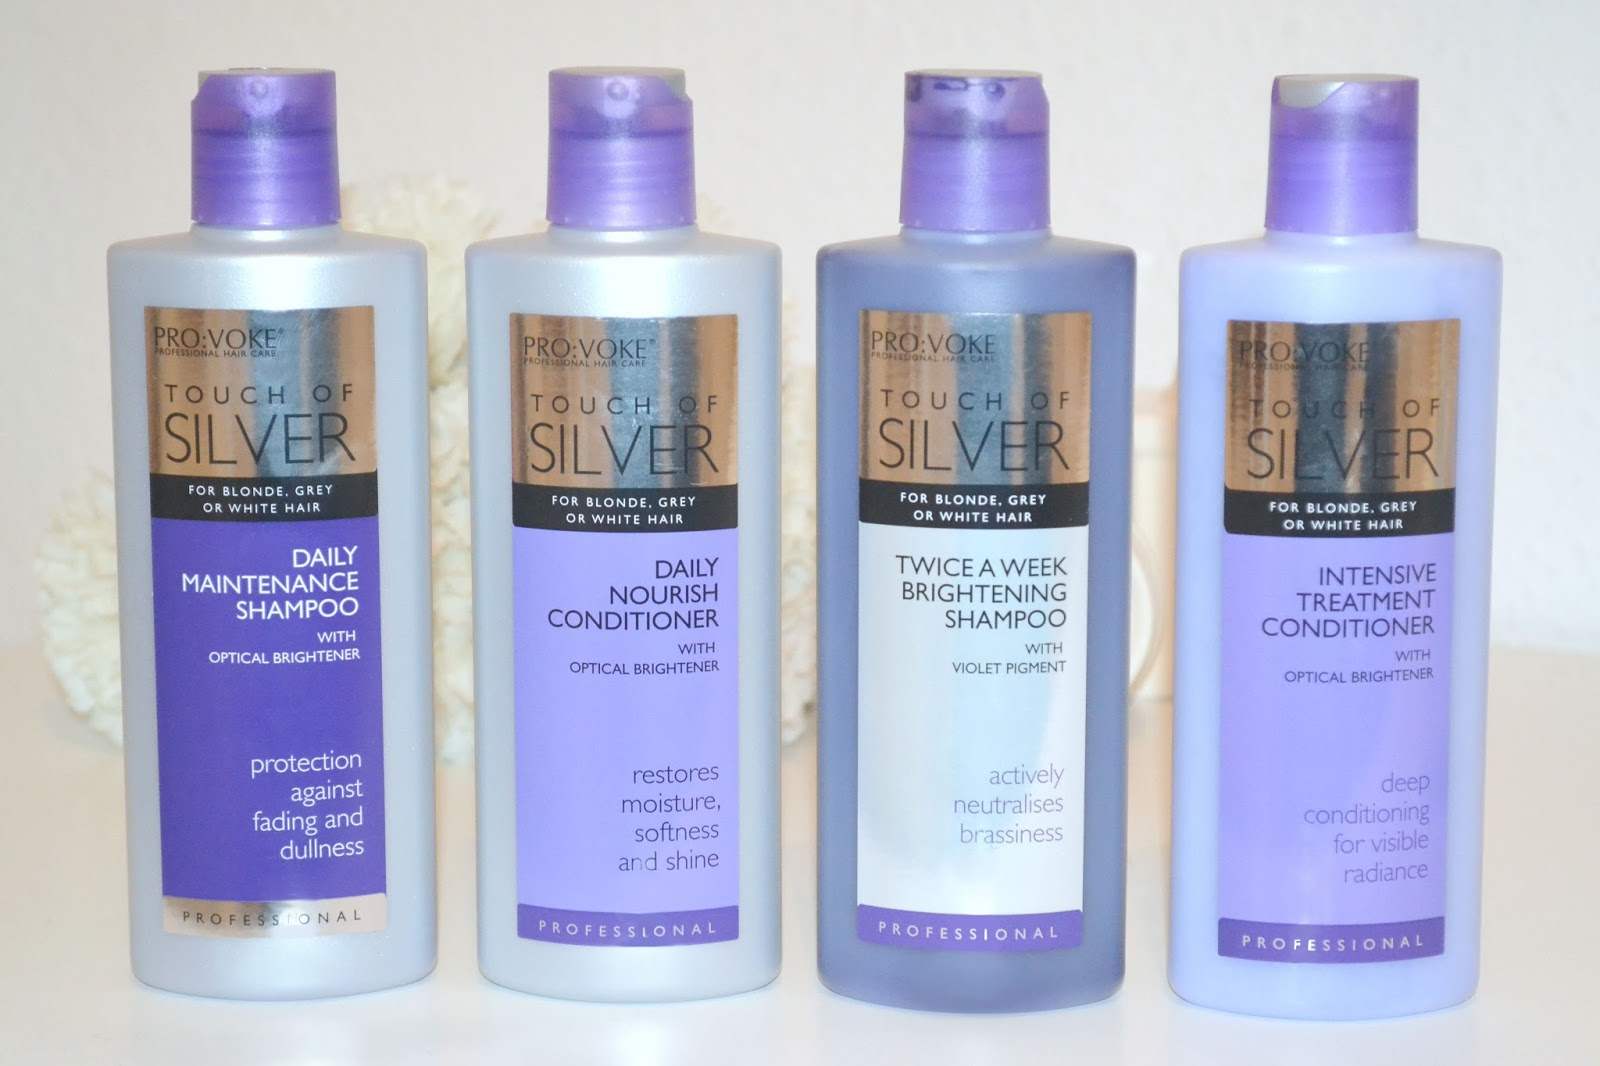 Maintaining Blonde Hair With Touch Of Silver Shampoo And